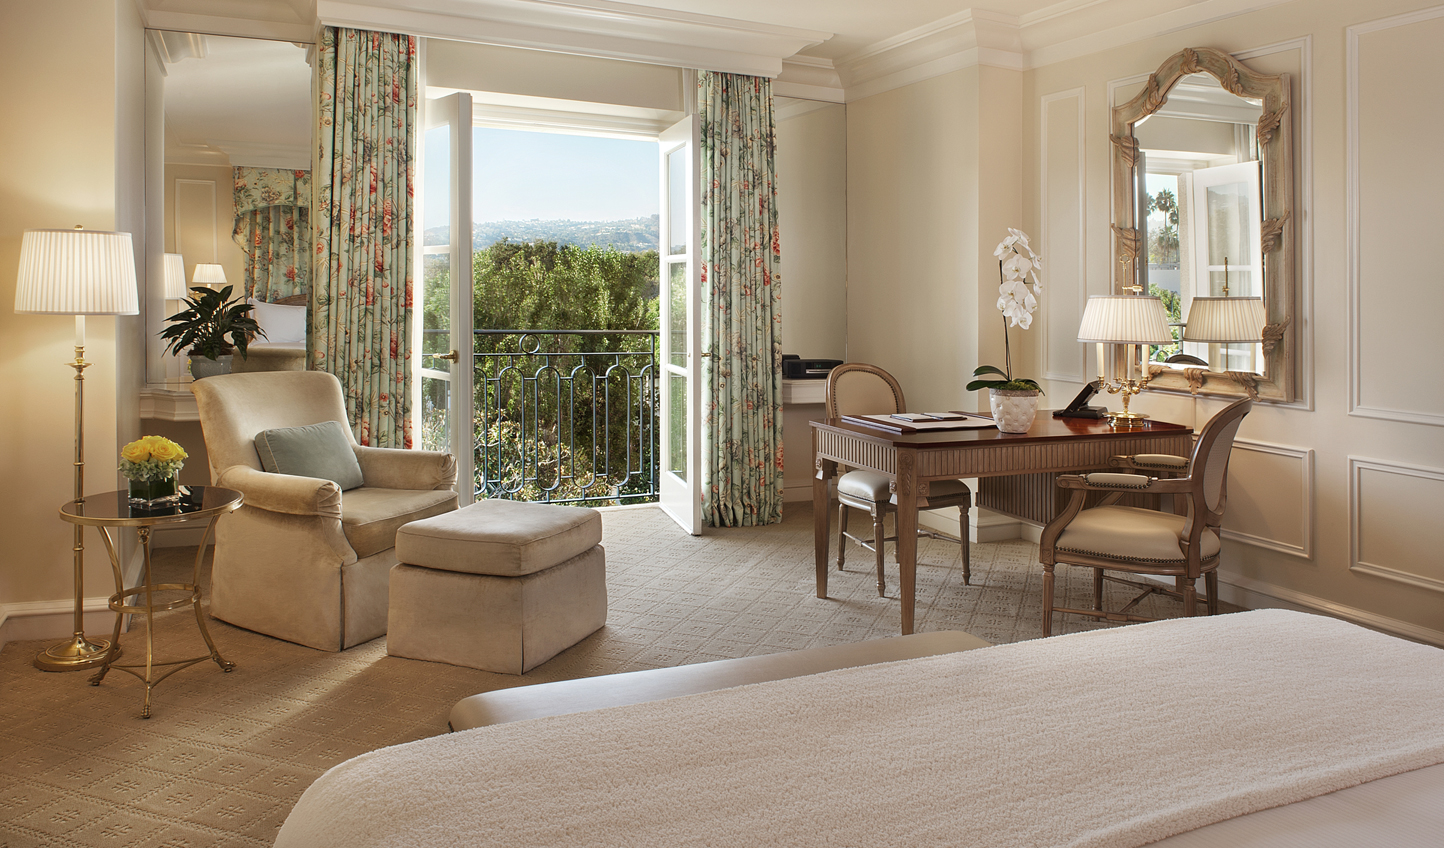 Relax in luxury in one of the beautiful guestrooms